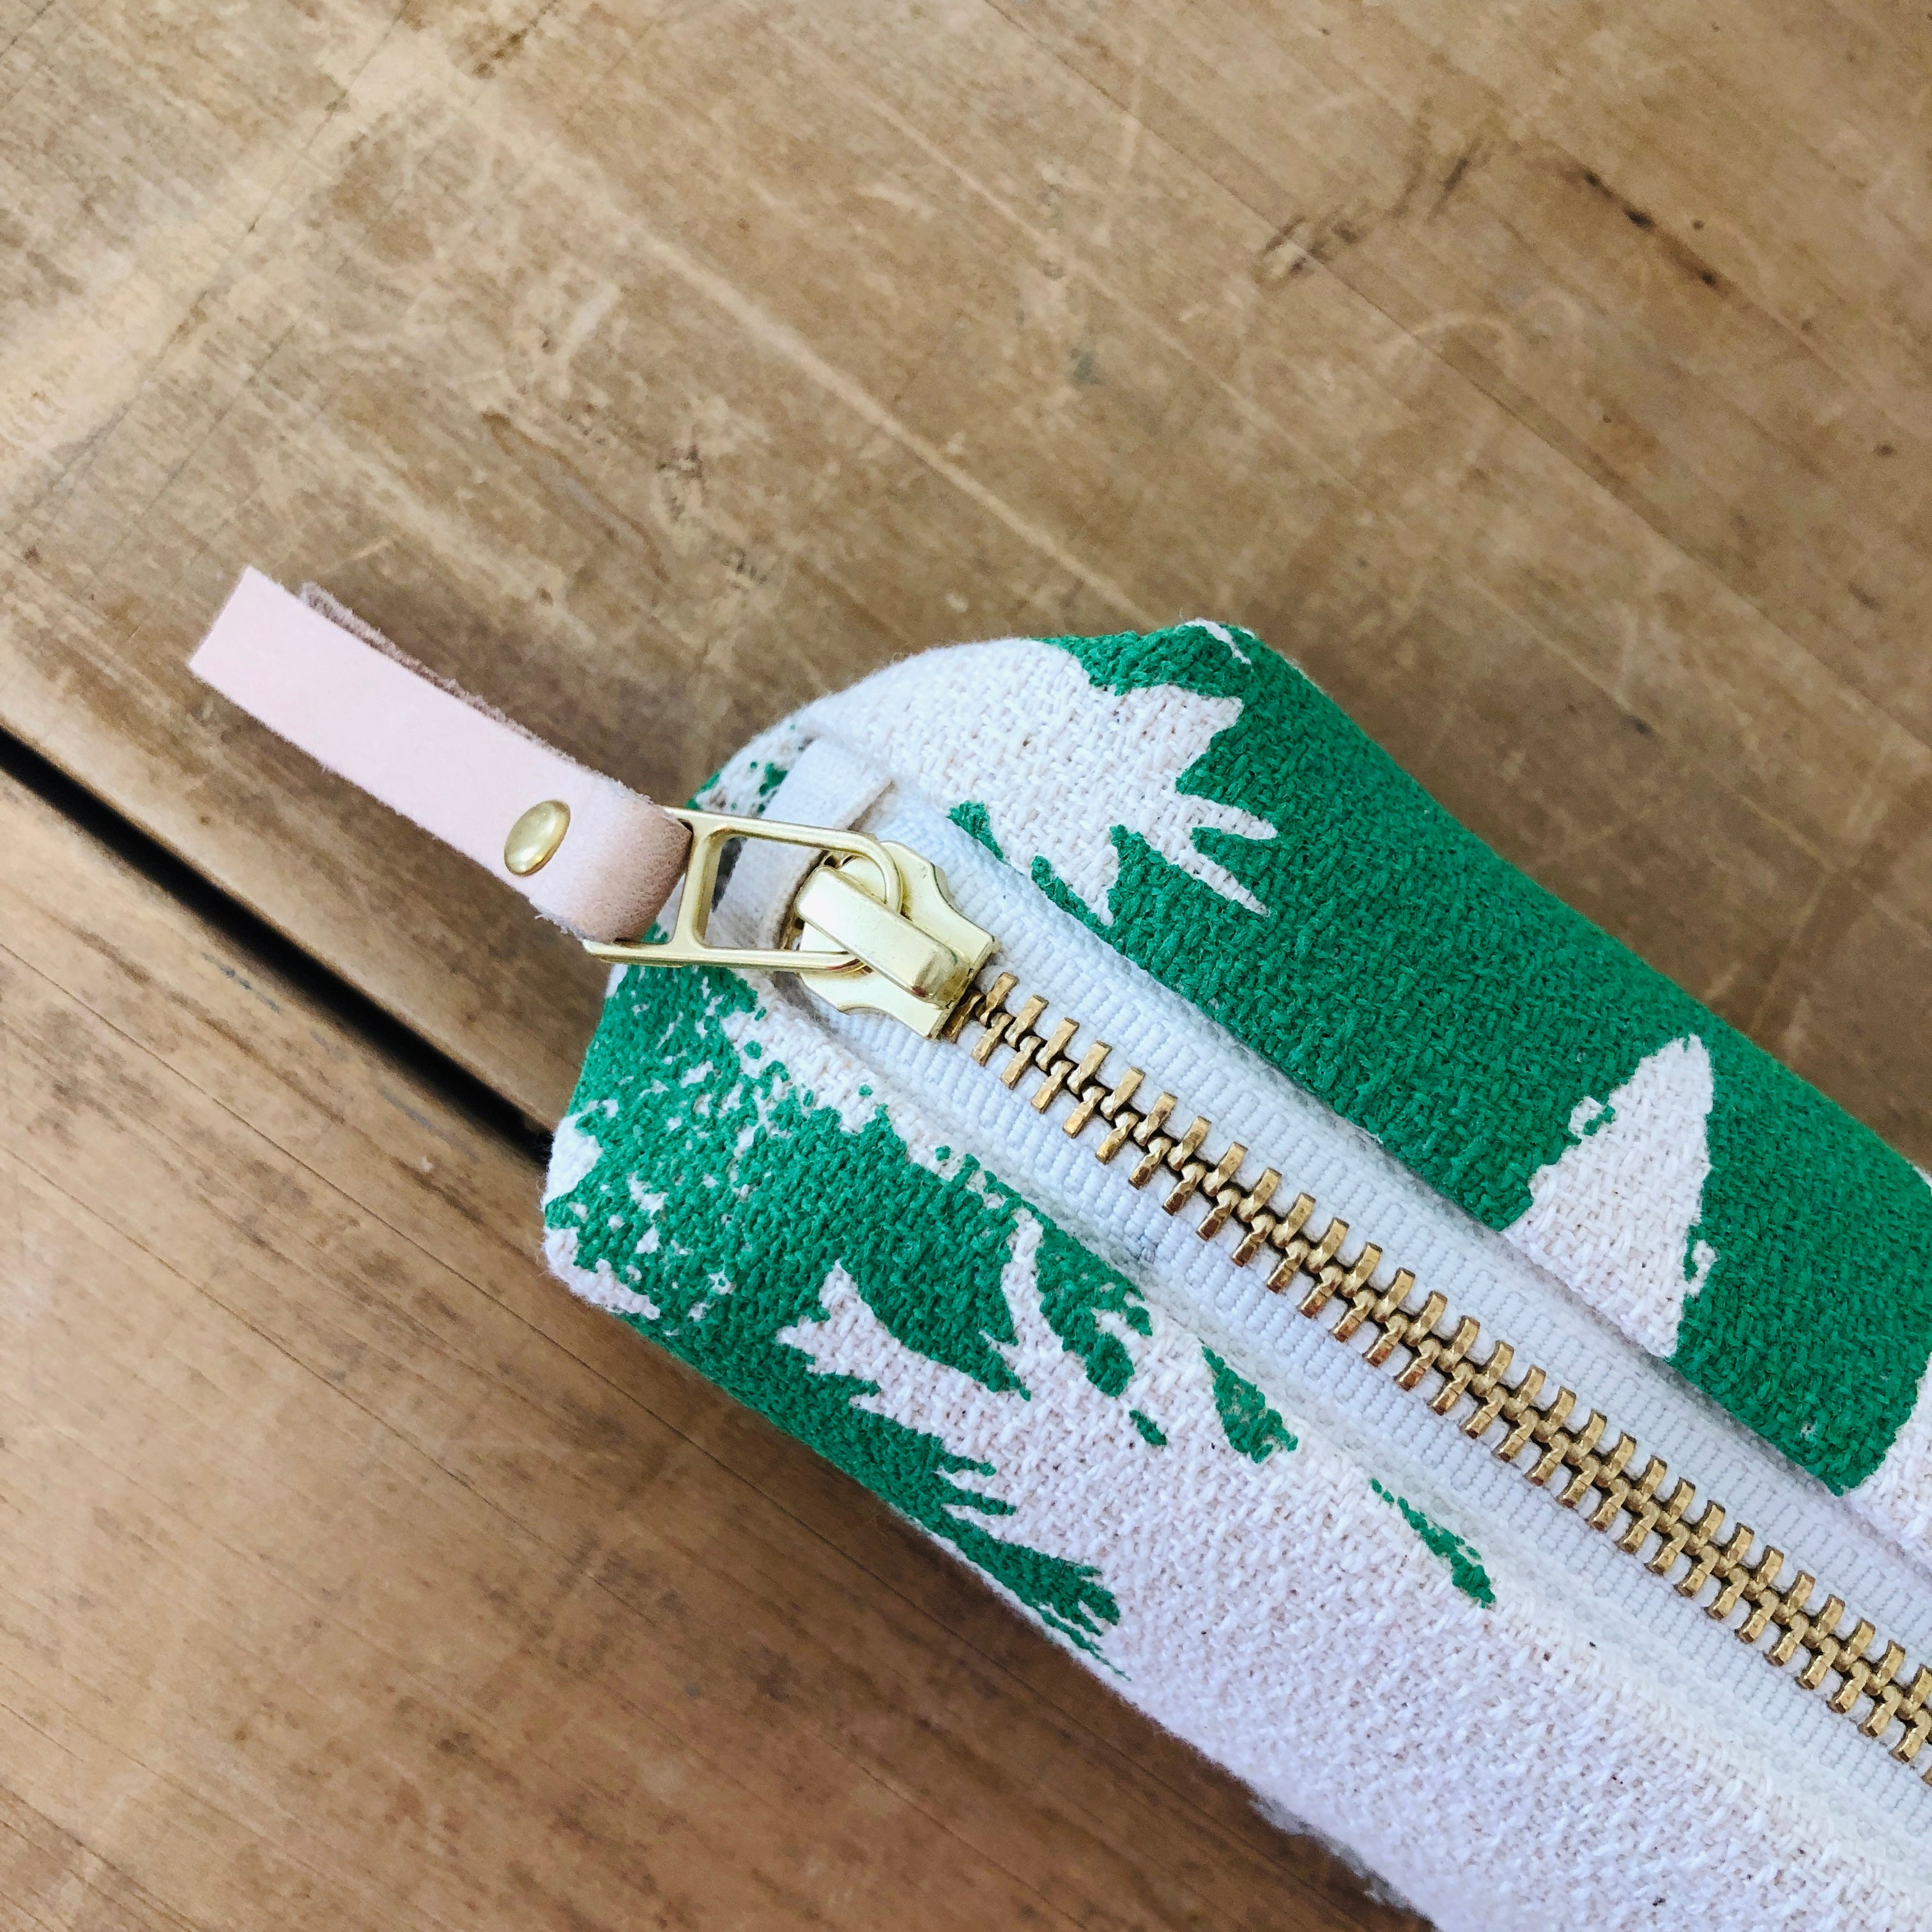 SEA FOAM ASHLEY PINE ROUND PENCIL ZIPPER BAG